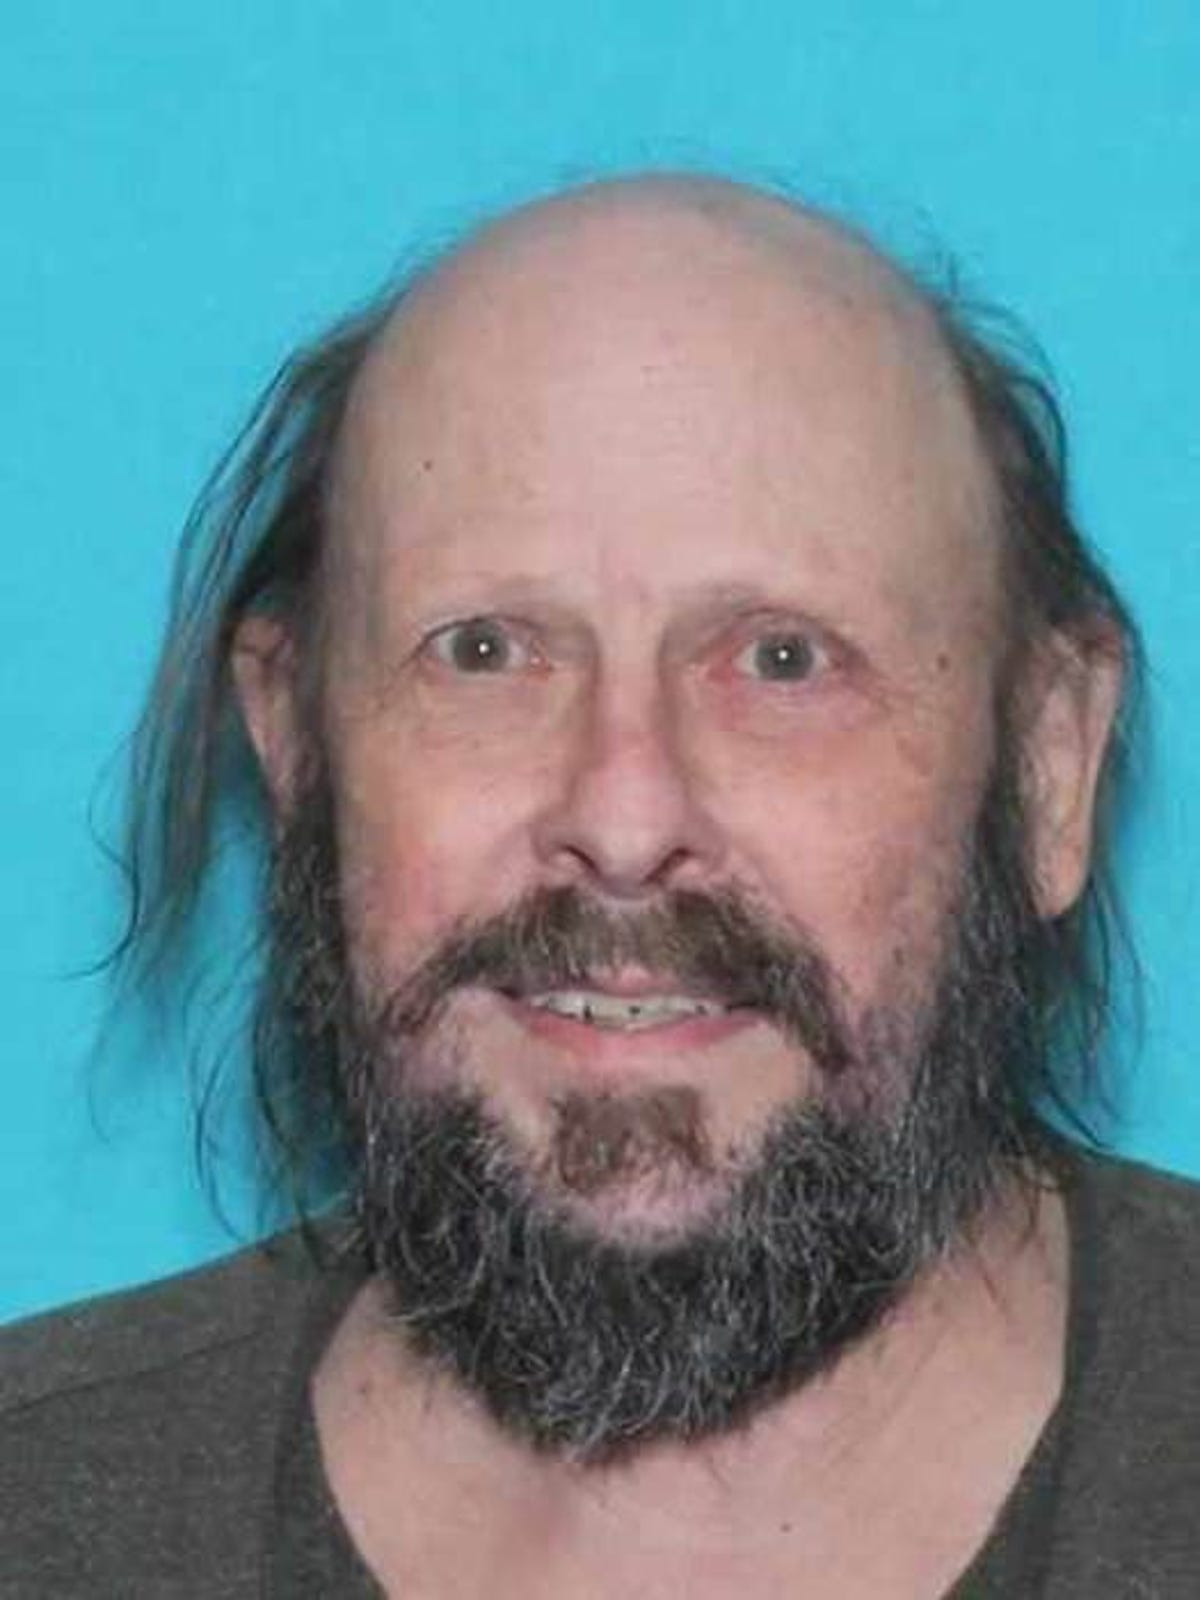 UPDATE: Missing man found, SAPD says